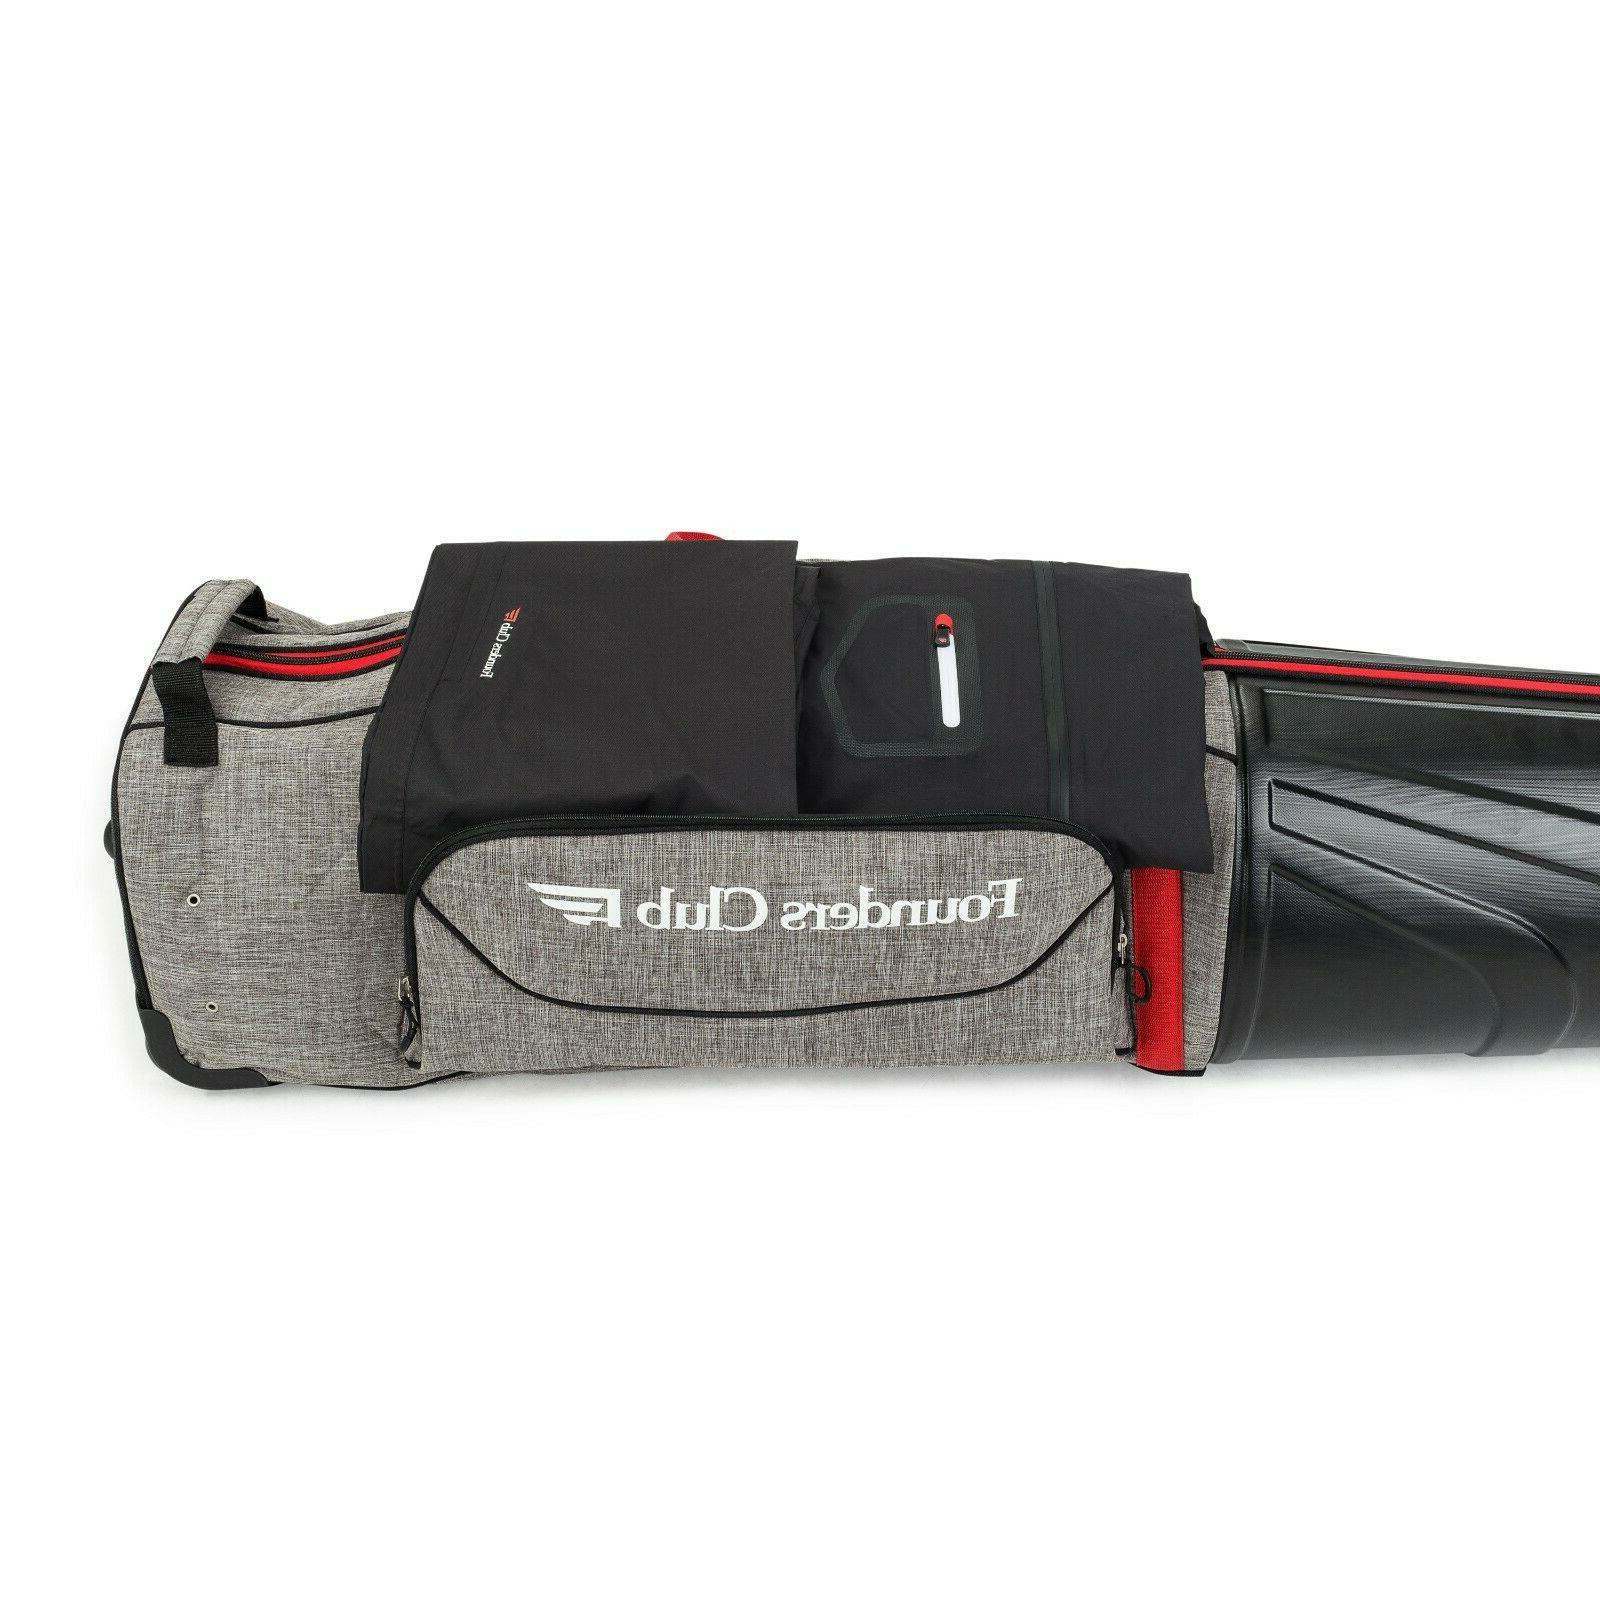 Founders Golf Luggage with Hard Shell